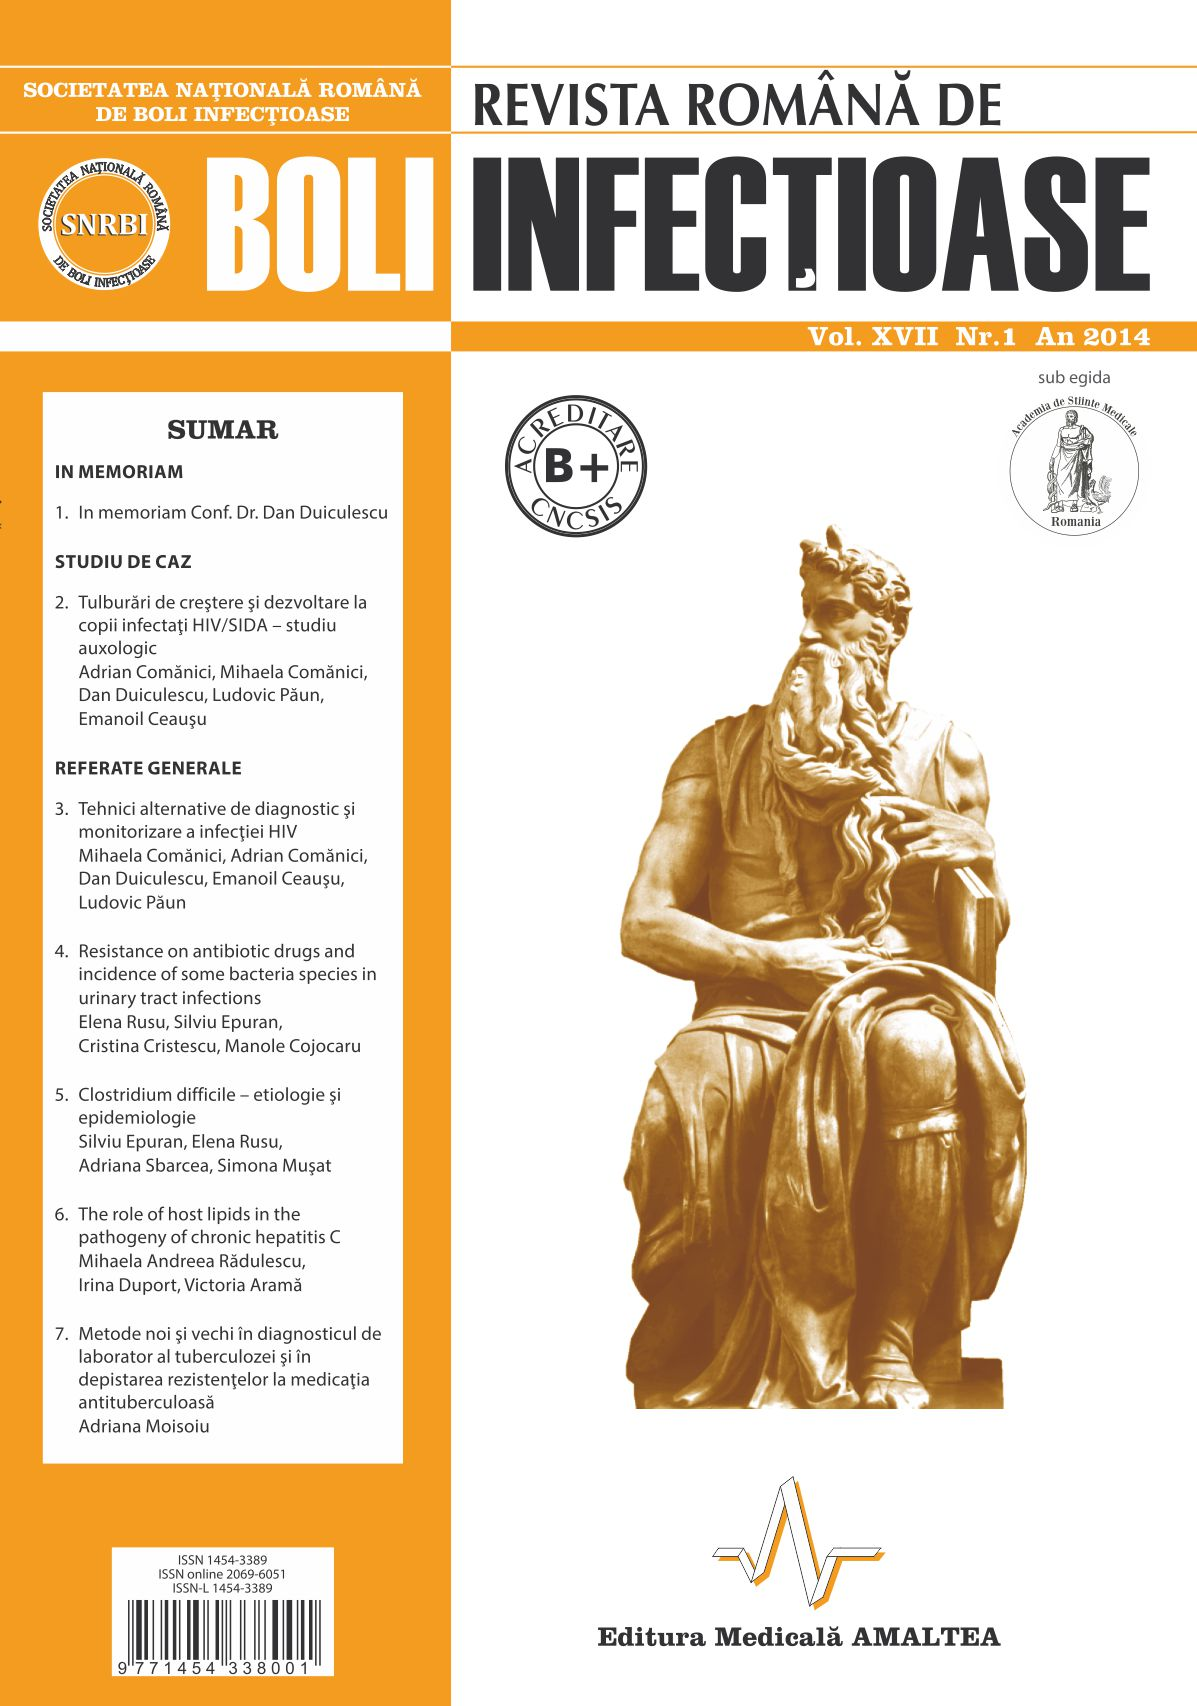 Revista Romana de Boli Infectioase | Vol. XVII, No. 1, 2014